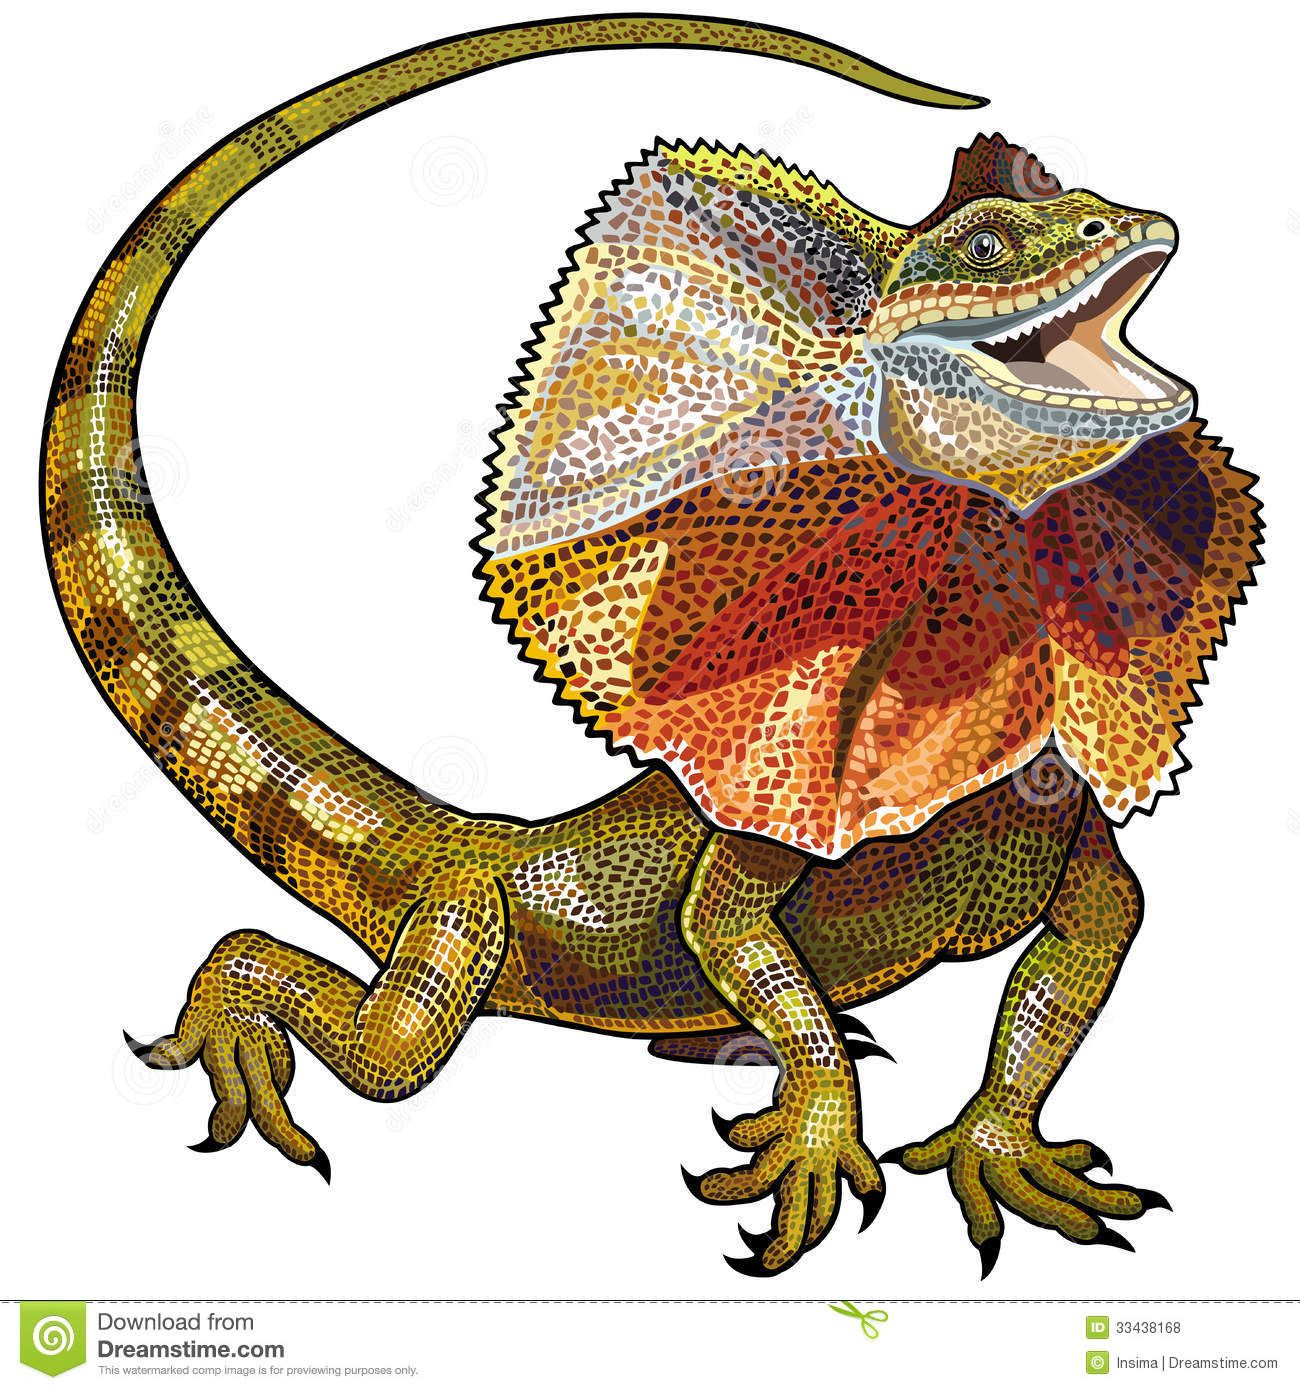 Frill Necked Lizard Google Search Lizard Cartoon Lizard